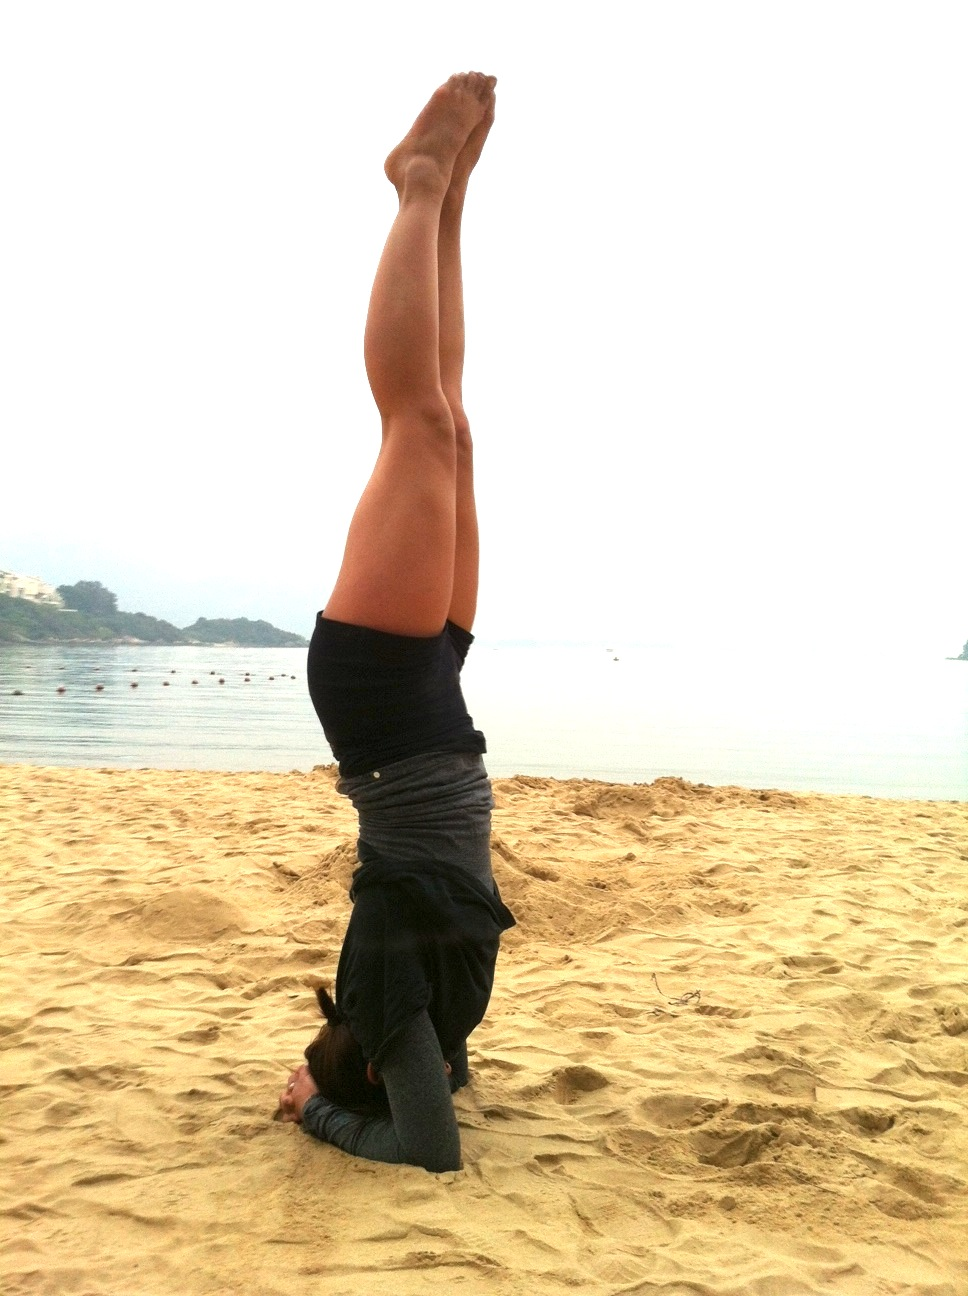 krissa does a headstand